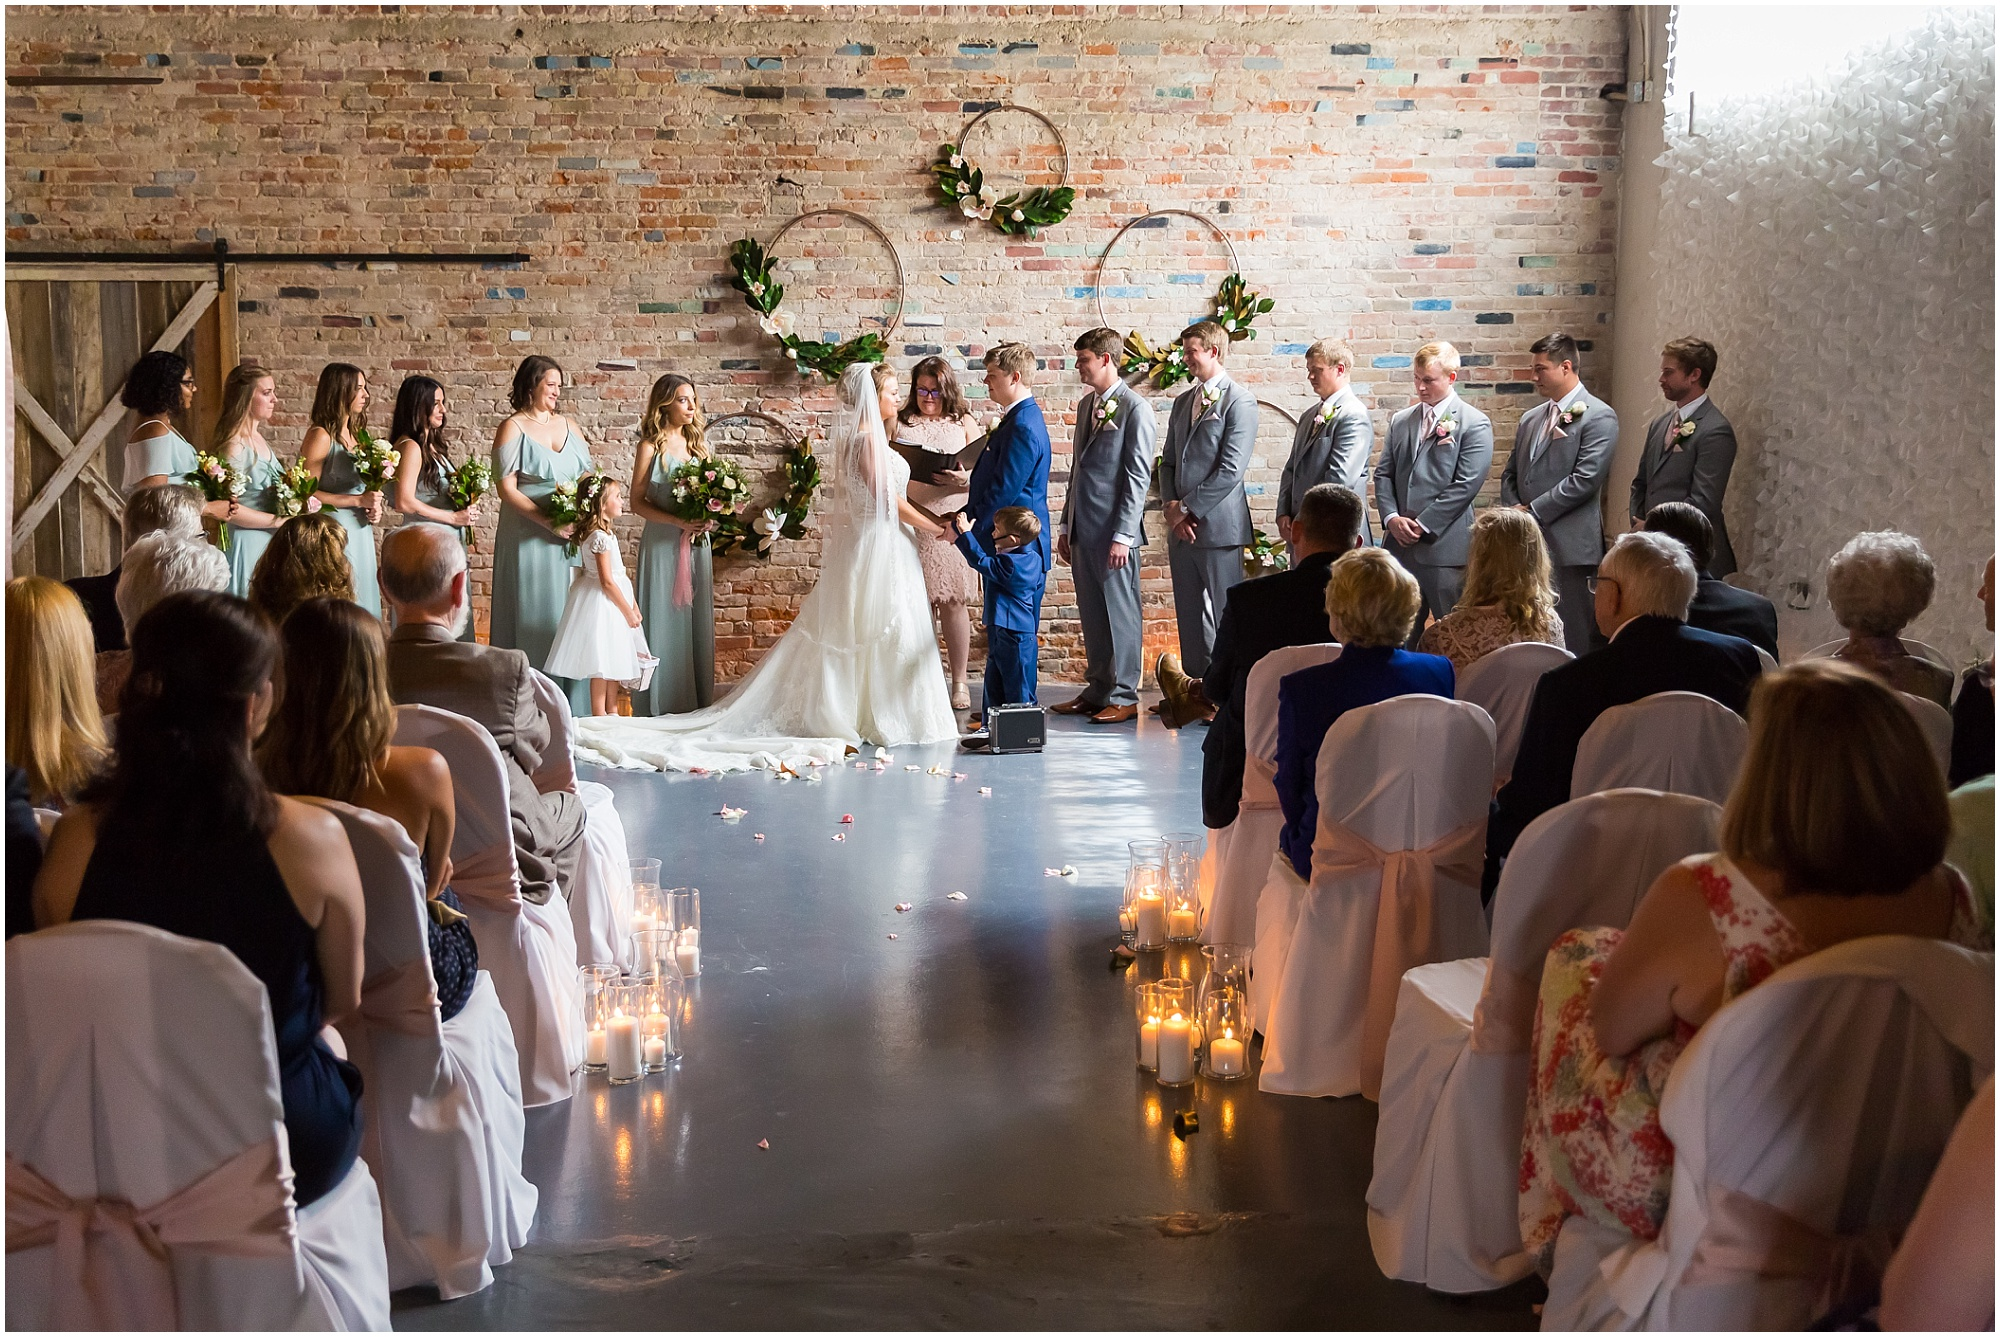 A bride and groom stand together during their wedding ceremony, next to an exposed brick wall with hanging floral hoops at The Eagle Historic Warehouse in Hillsboro, Texas - Jason & Melaina Photography - www.jasonandmelaina.com